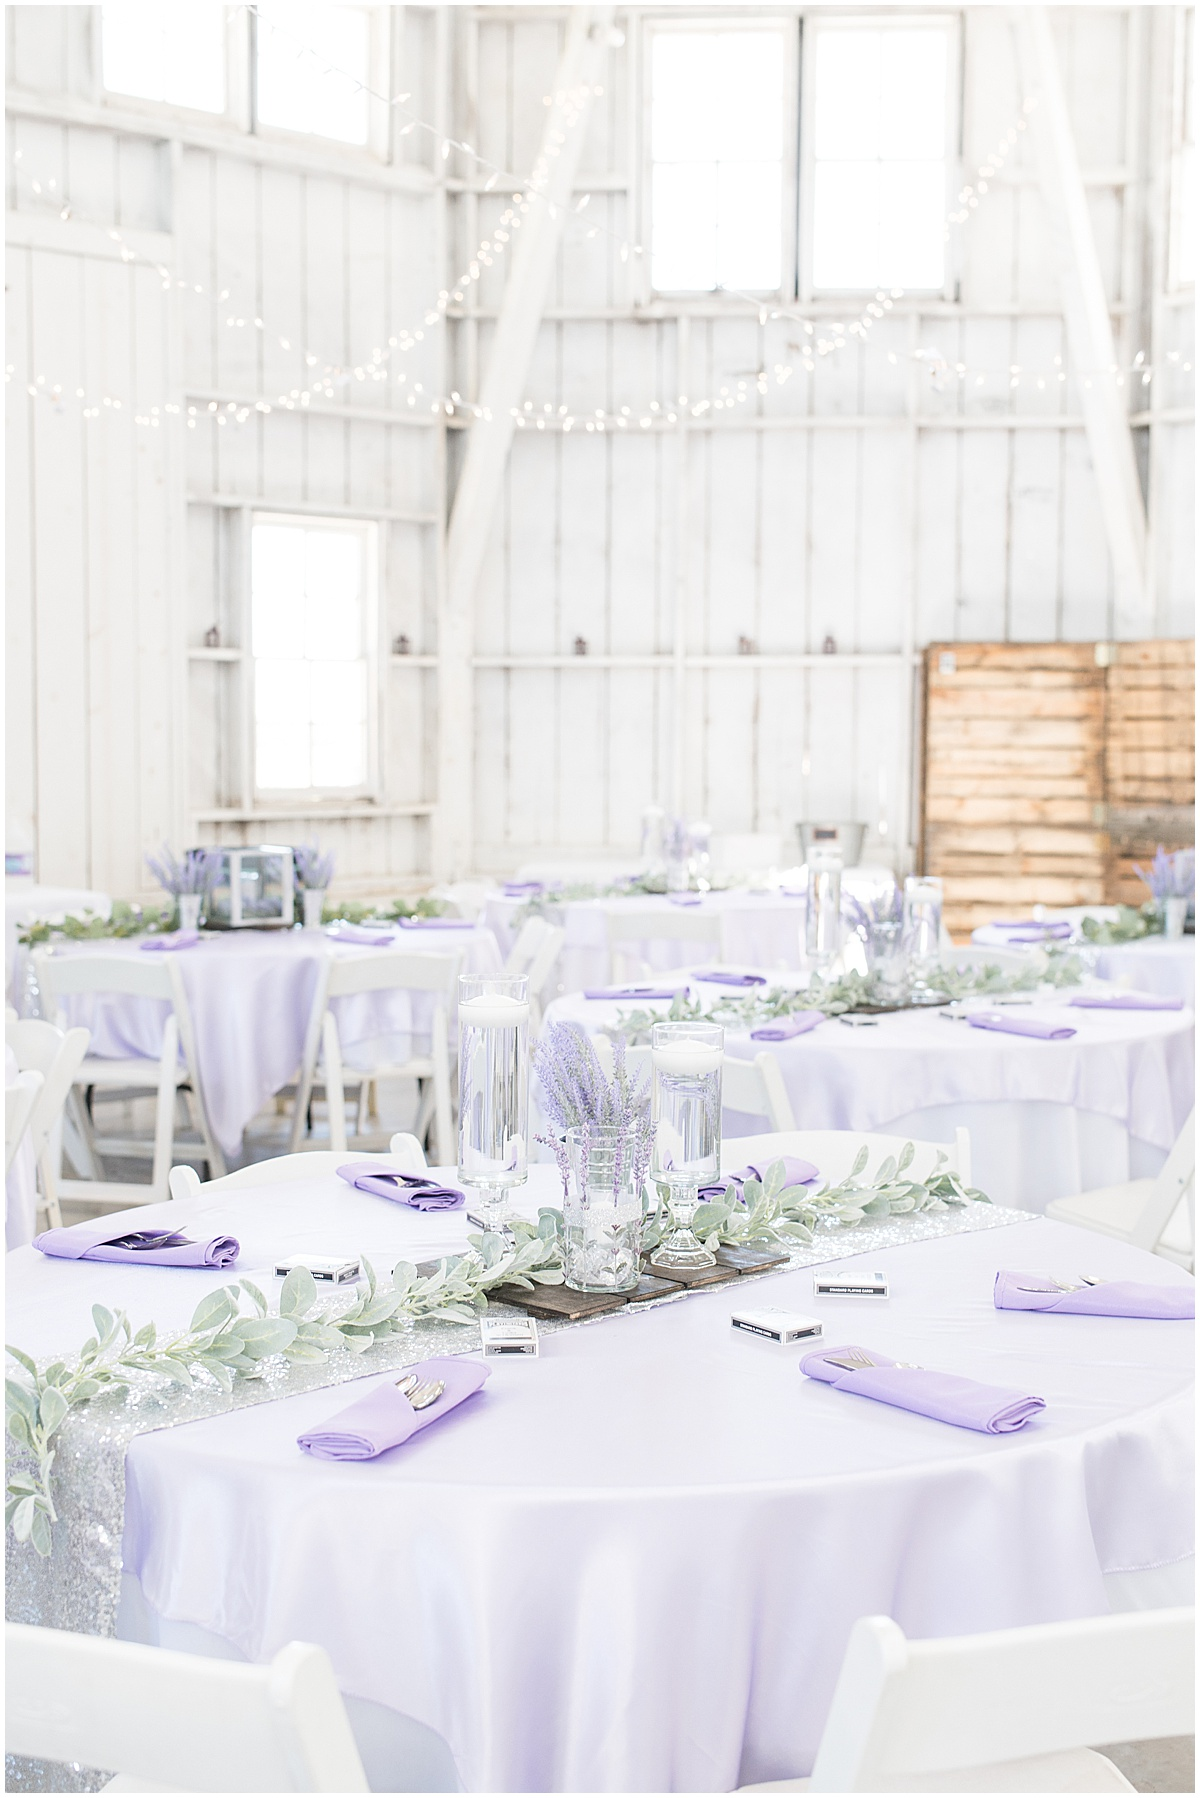 Reception detail photos for wedding at Wagner Angus Barn in Wolcott, Indiana